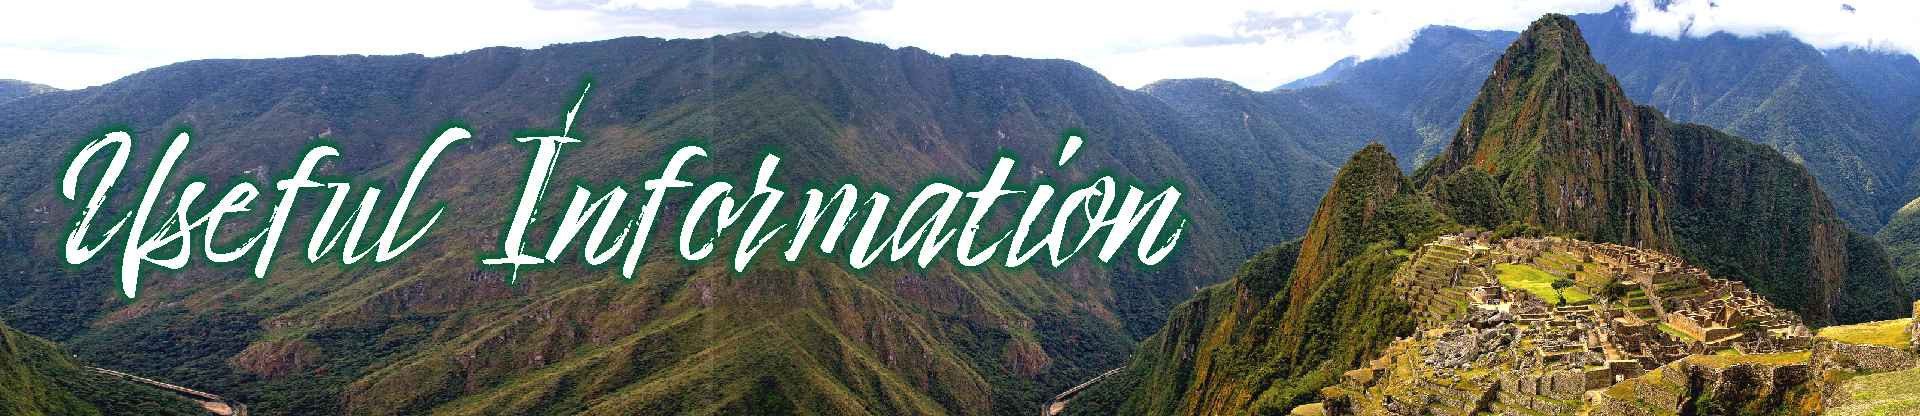 Important information about inca trail and machu picchu